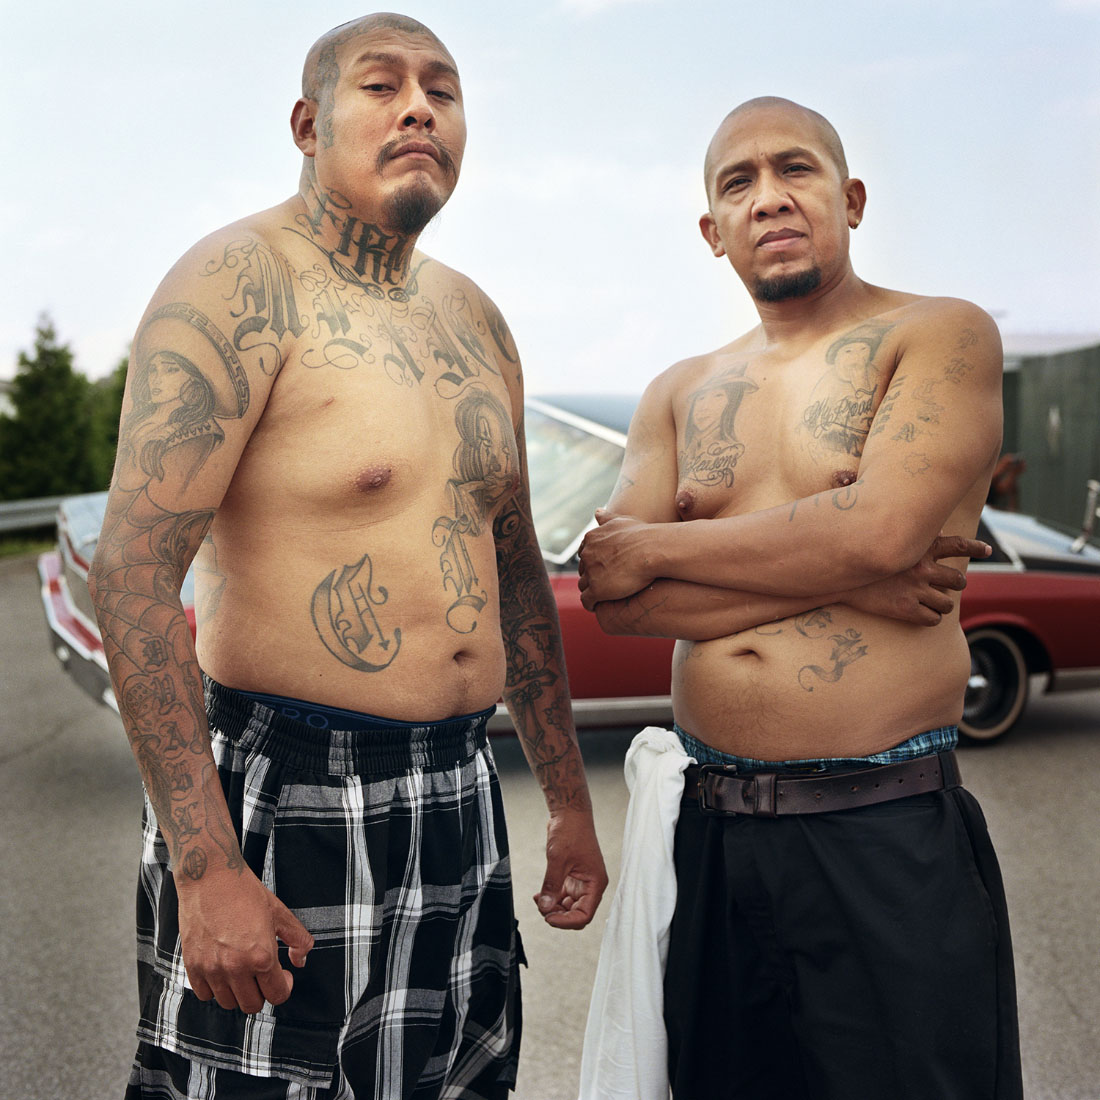 001 Dyablo and Andreas, The Bronx, NYC.jpg